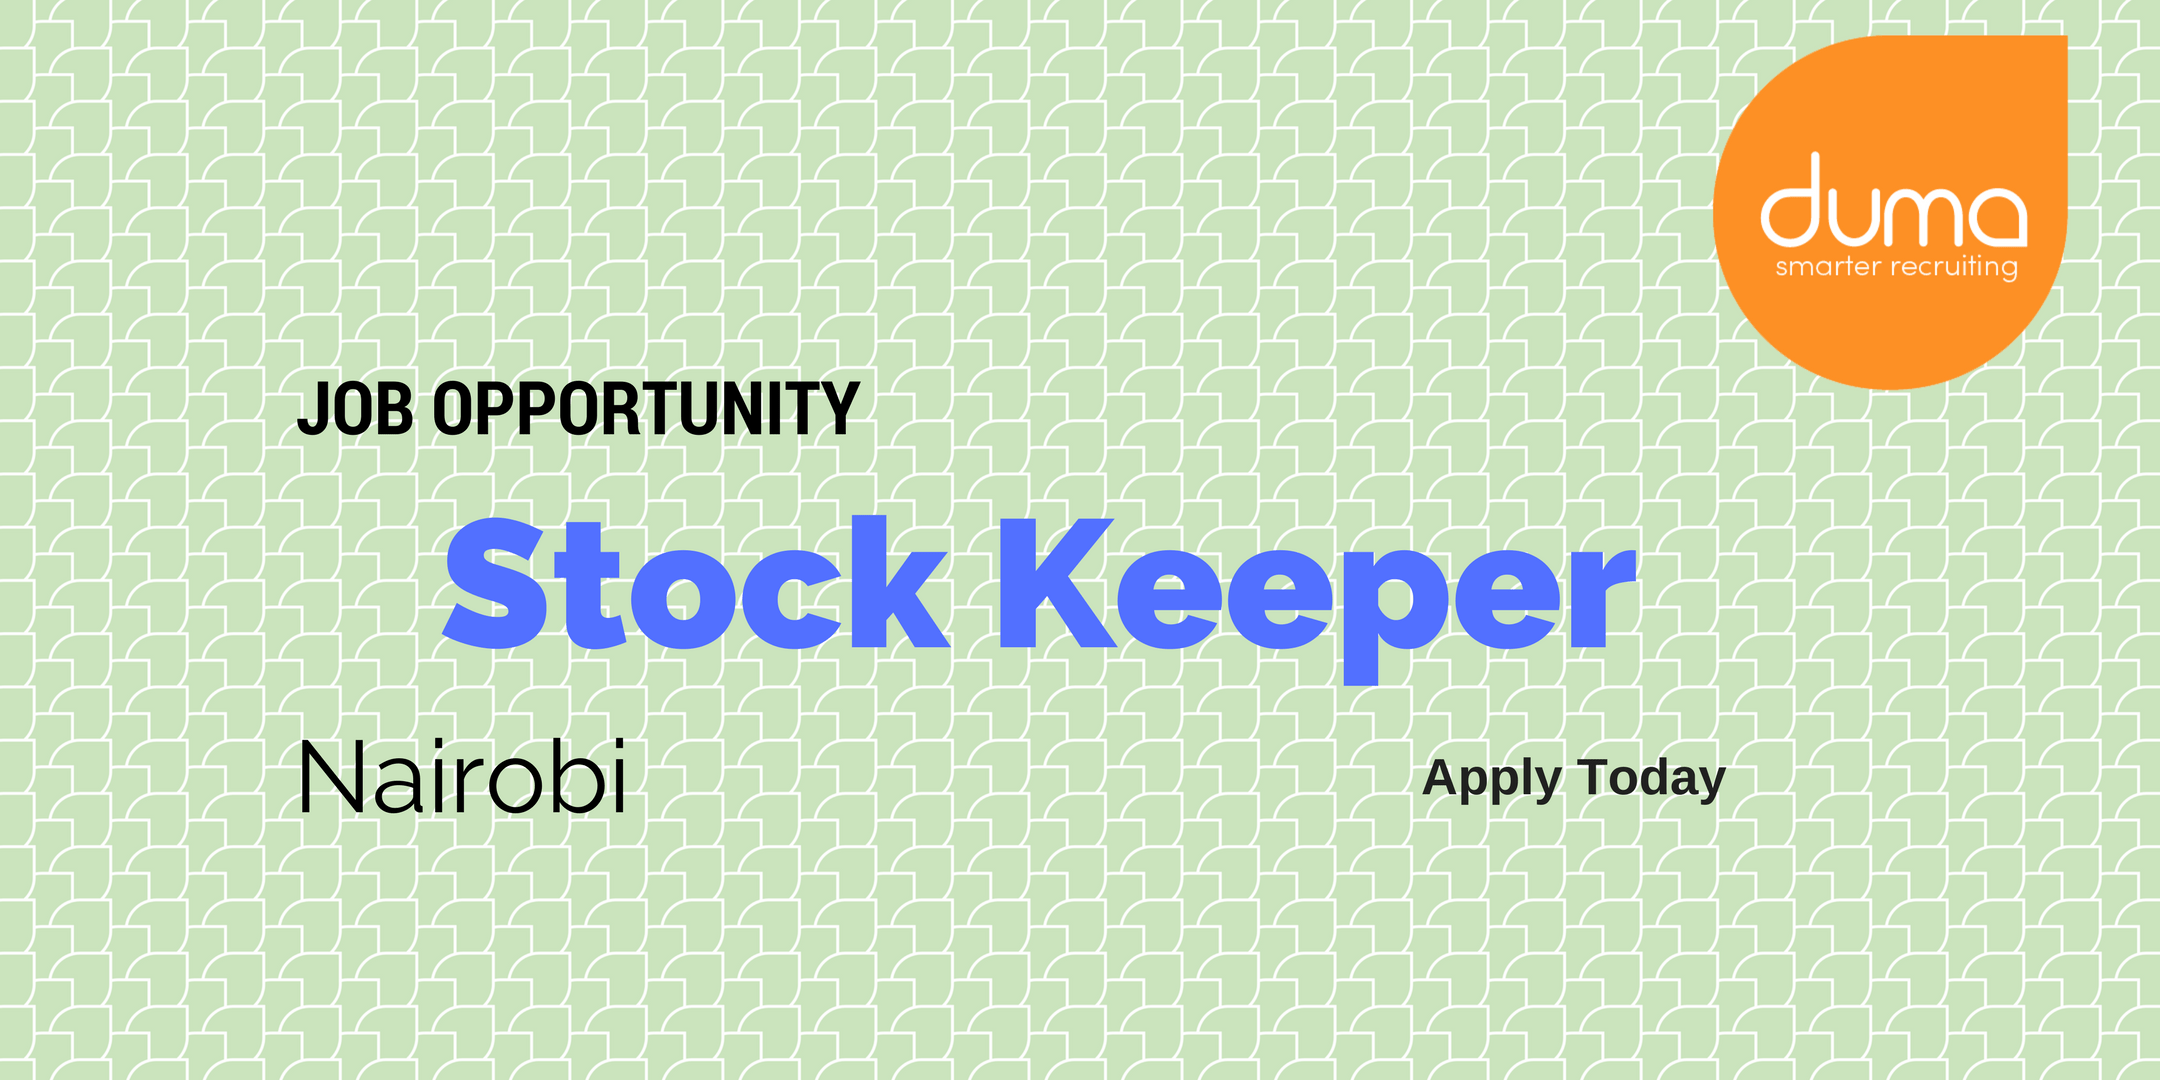 Apply for this Stock Keeper Vacancy today